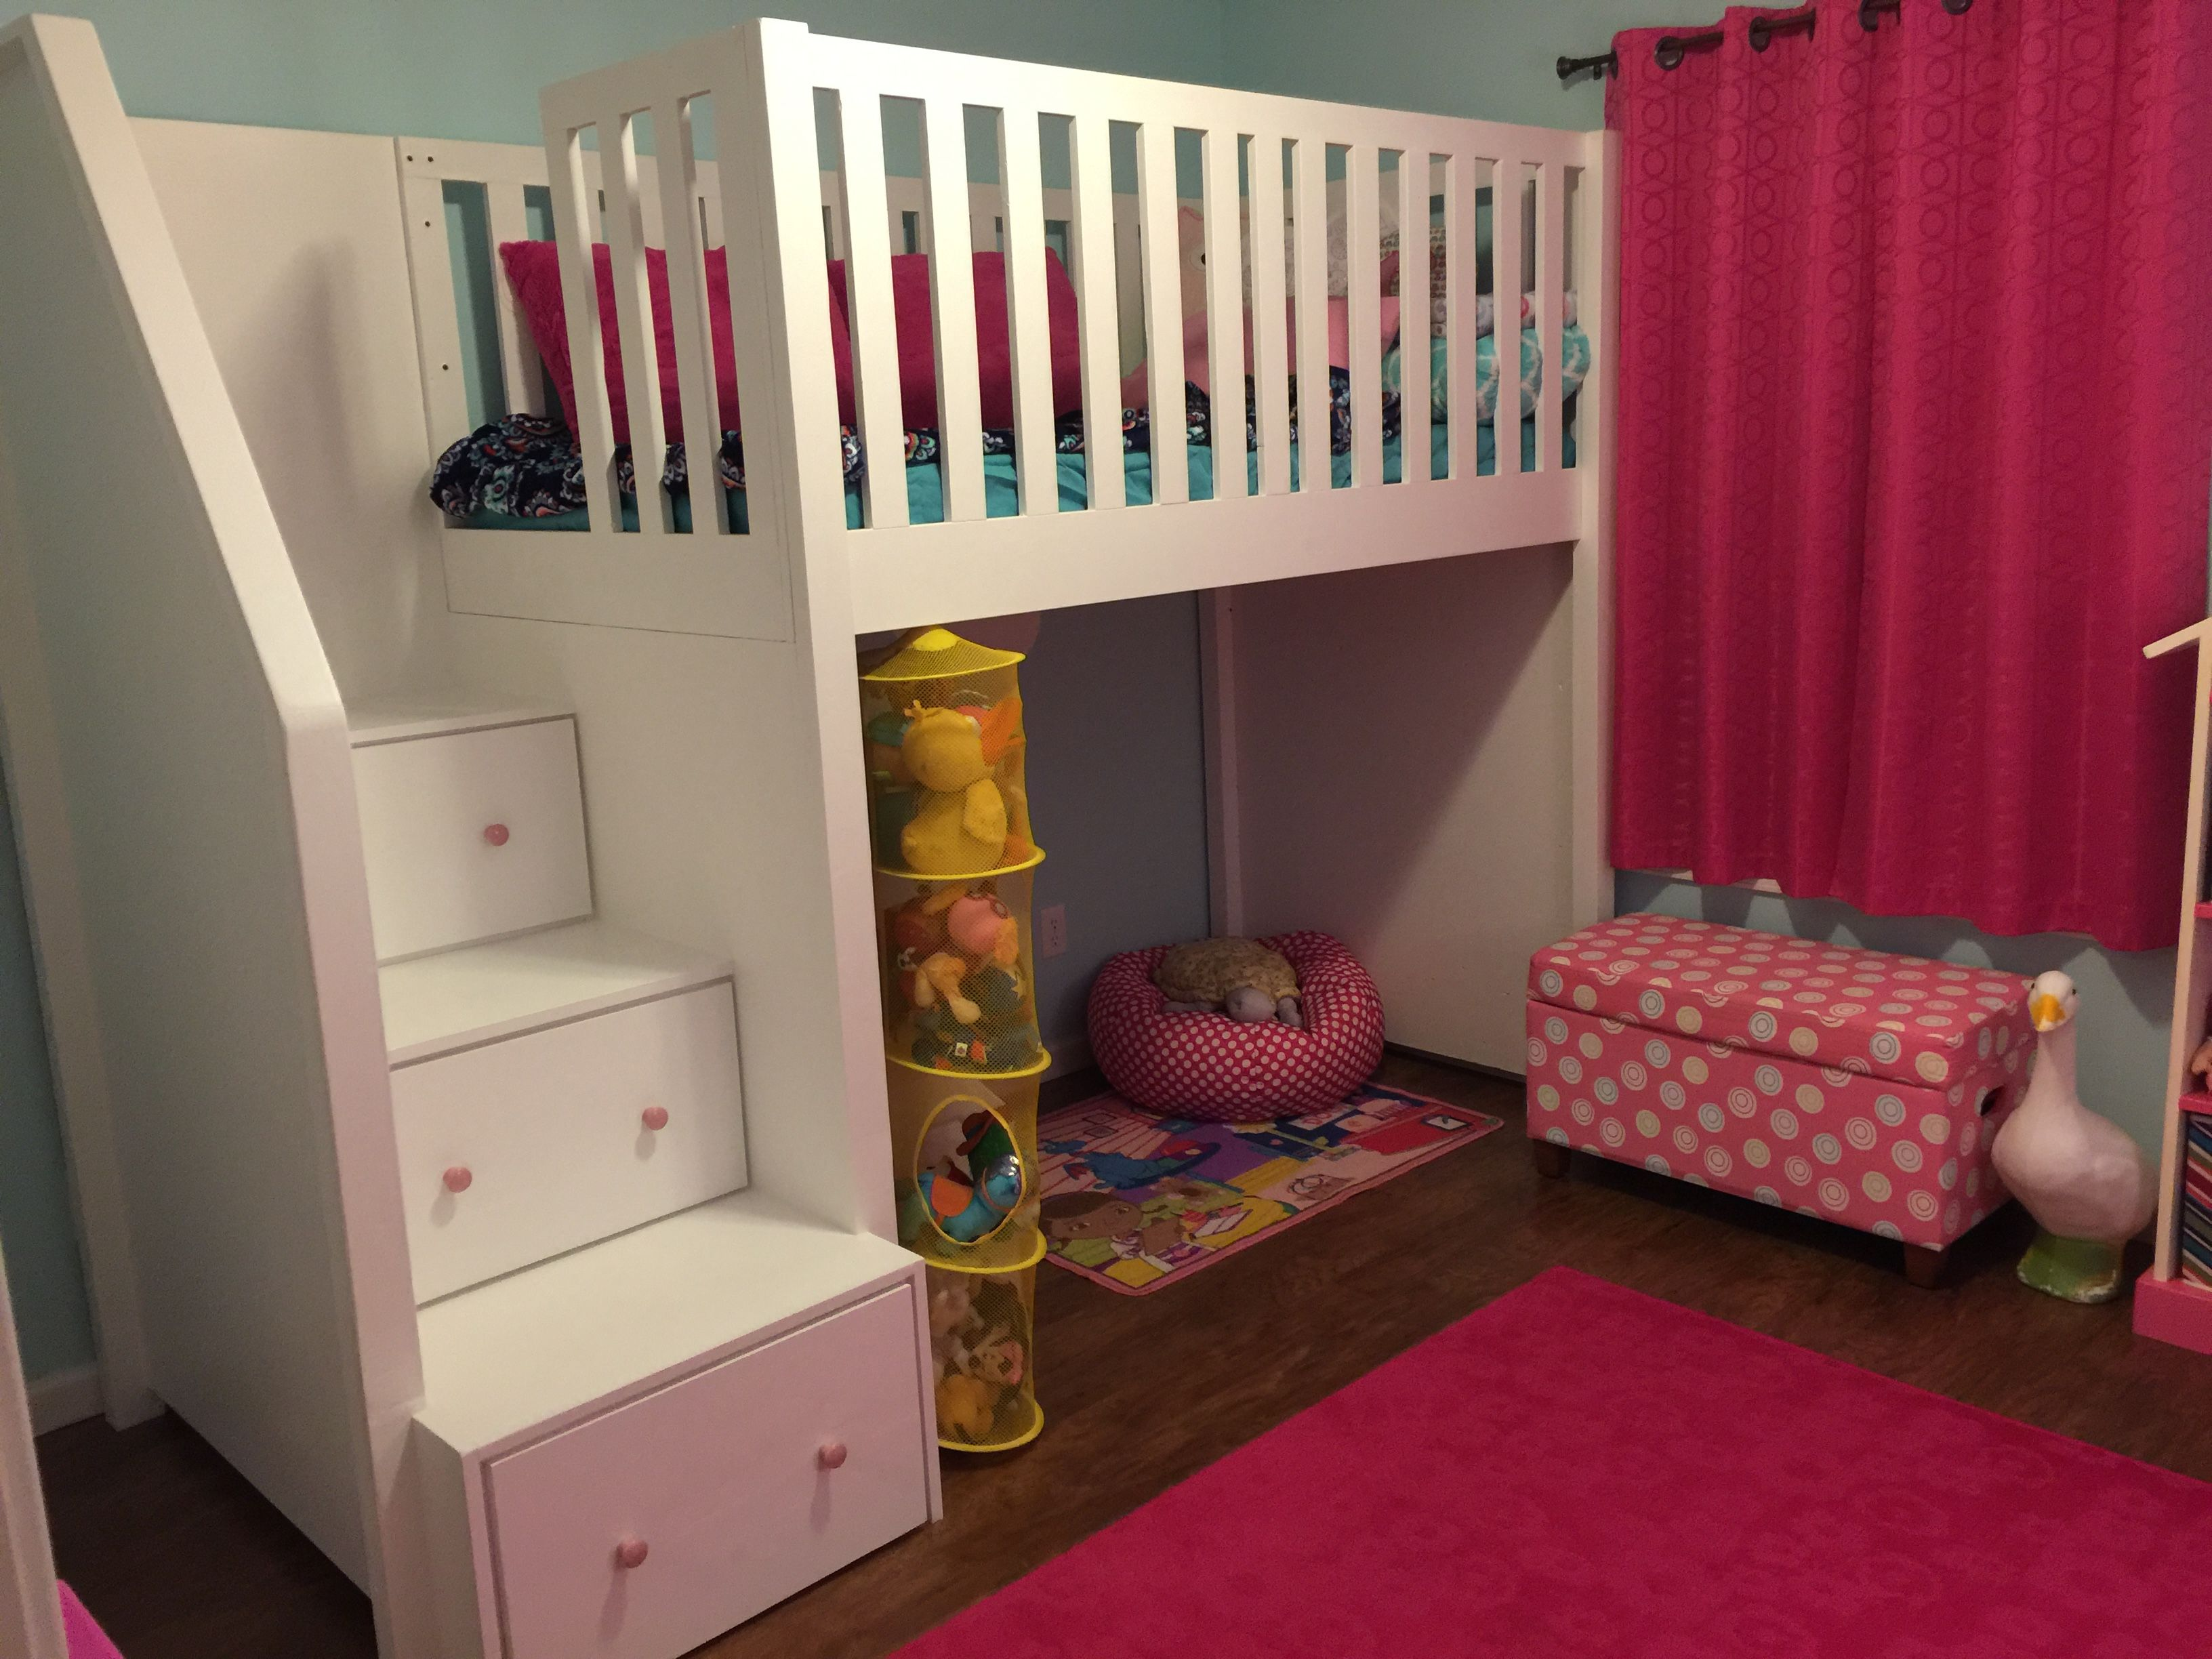 Best Loft Bed Do It Yourself Home Projects From Ana White 640 x 480